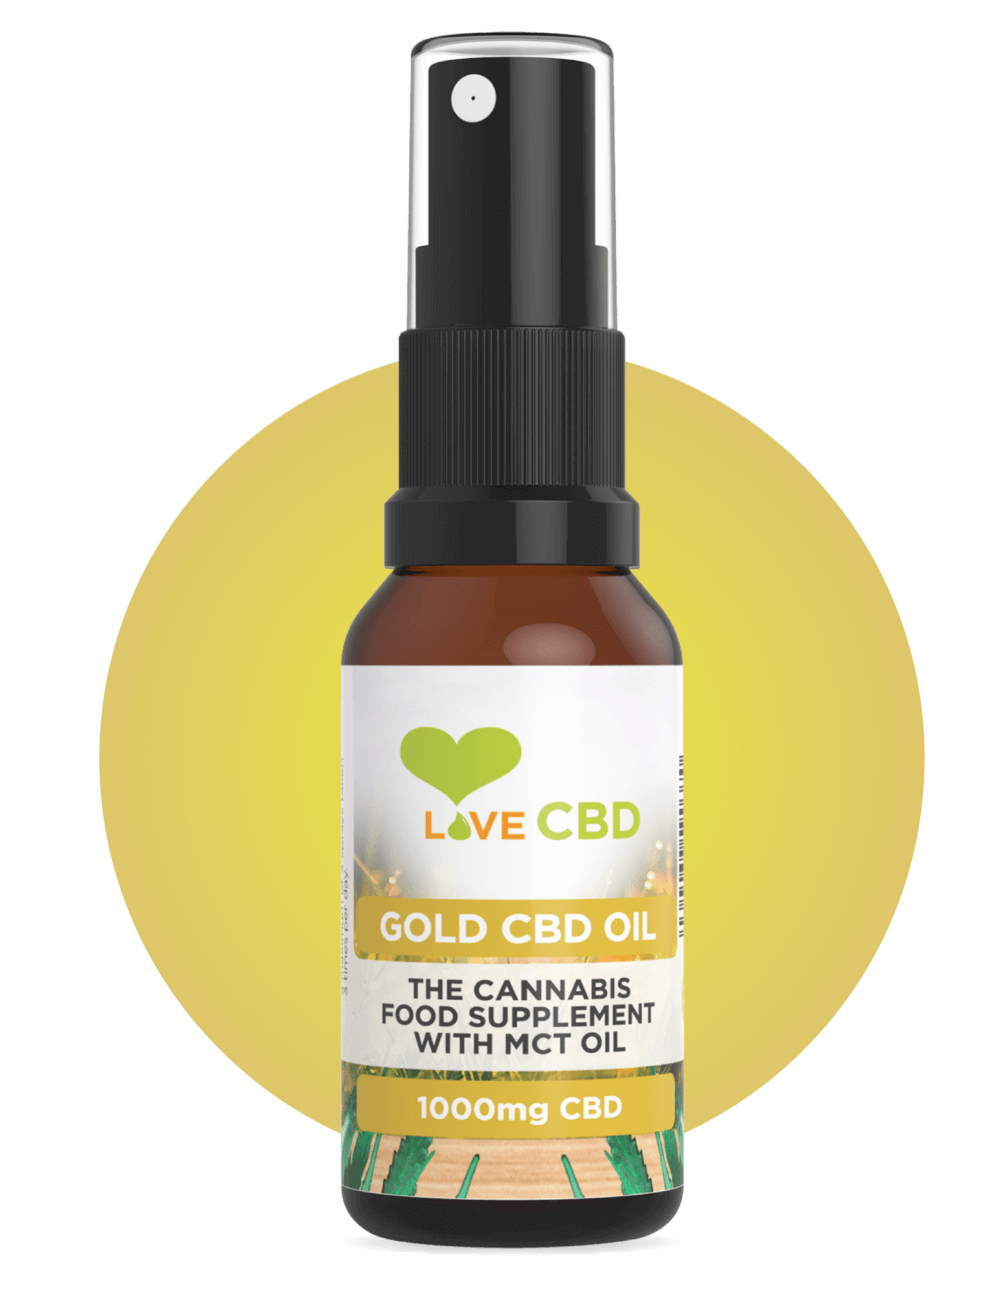 gold cbd oil circle